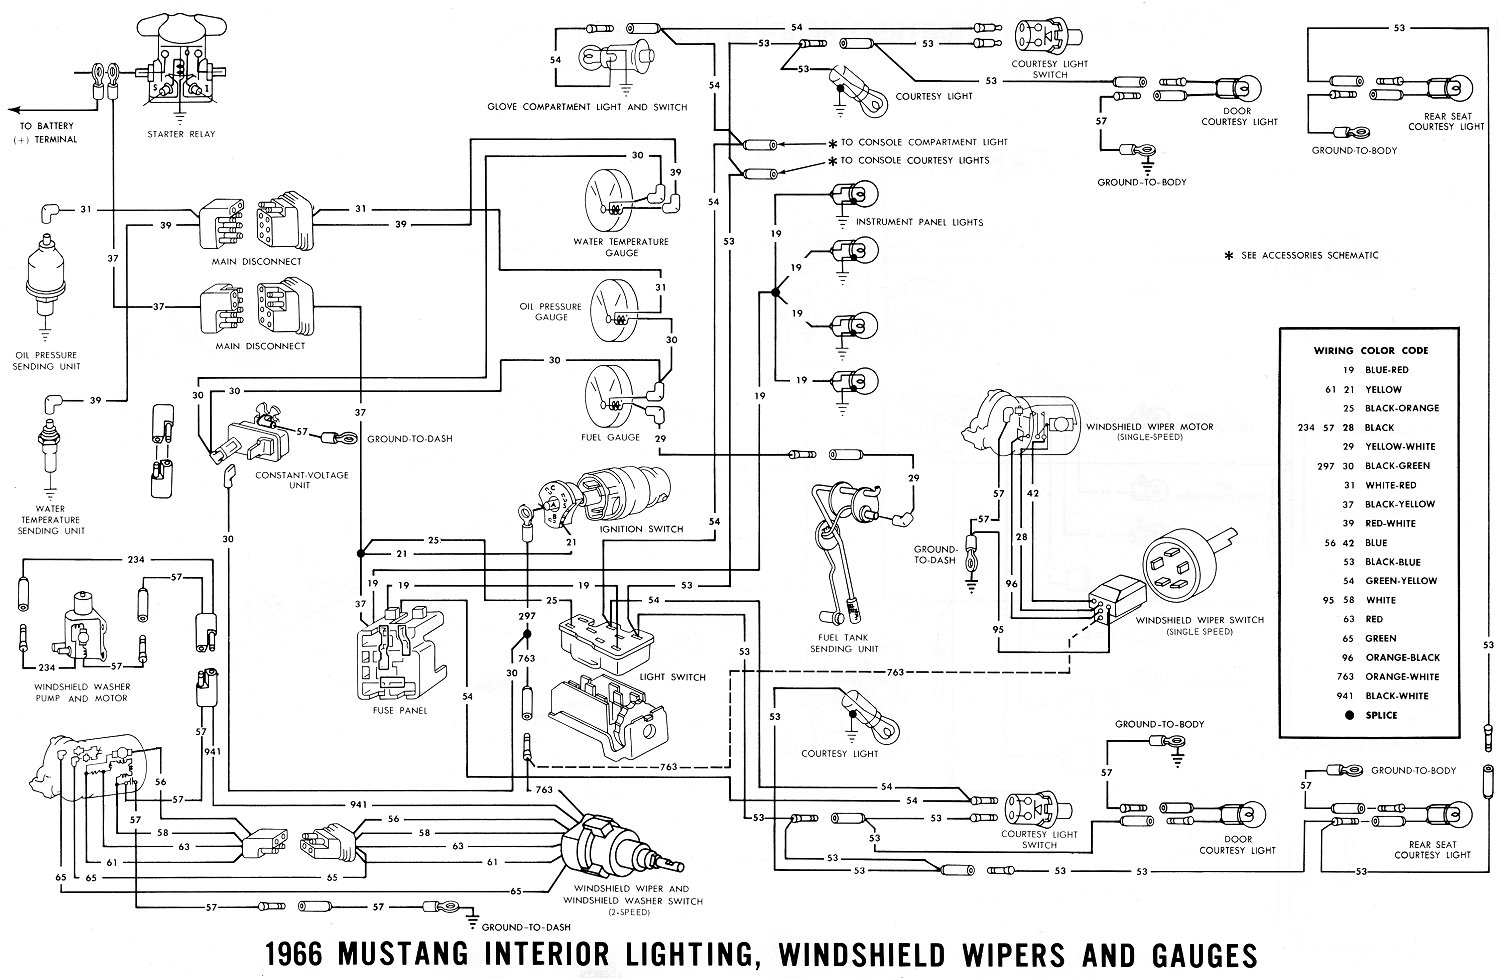 1966 Mustang Interior Lighting Diagram lelu's 66 mustang 1966 mustang wiring diagrams 1966 mustang fog light wiring diagram at bakdesigns.co